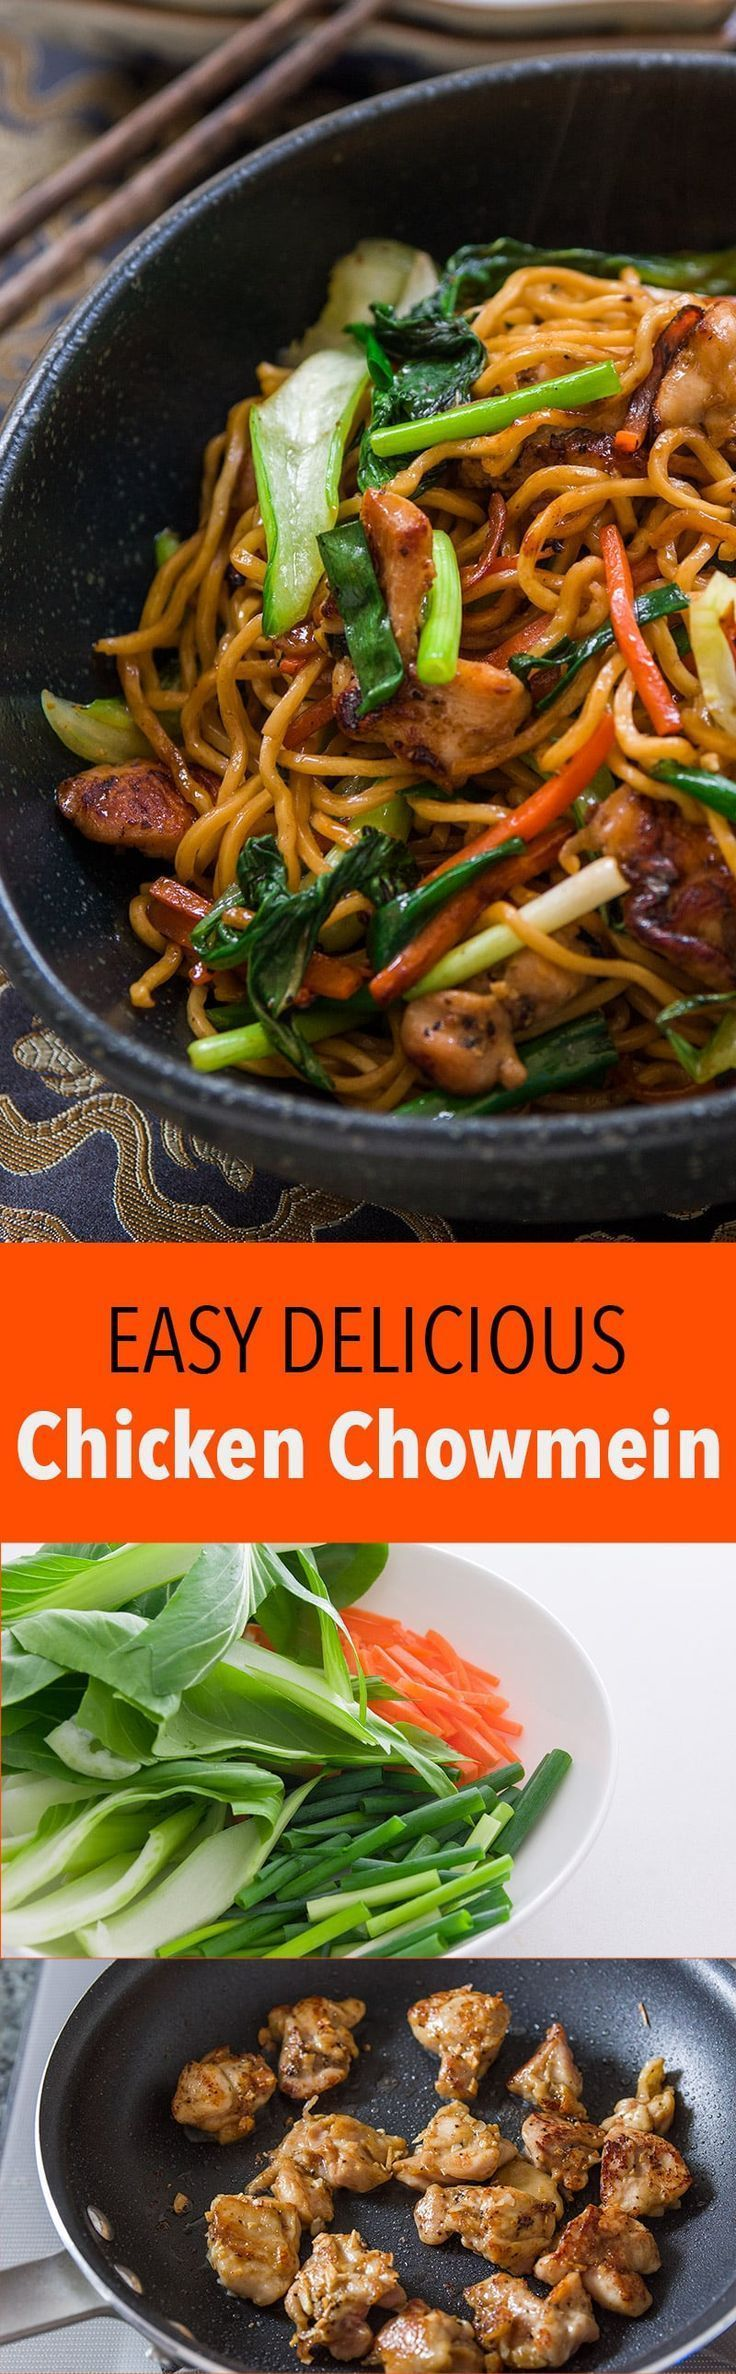 best 25 chicken and vegetables ideas on pinterest easy healthy